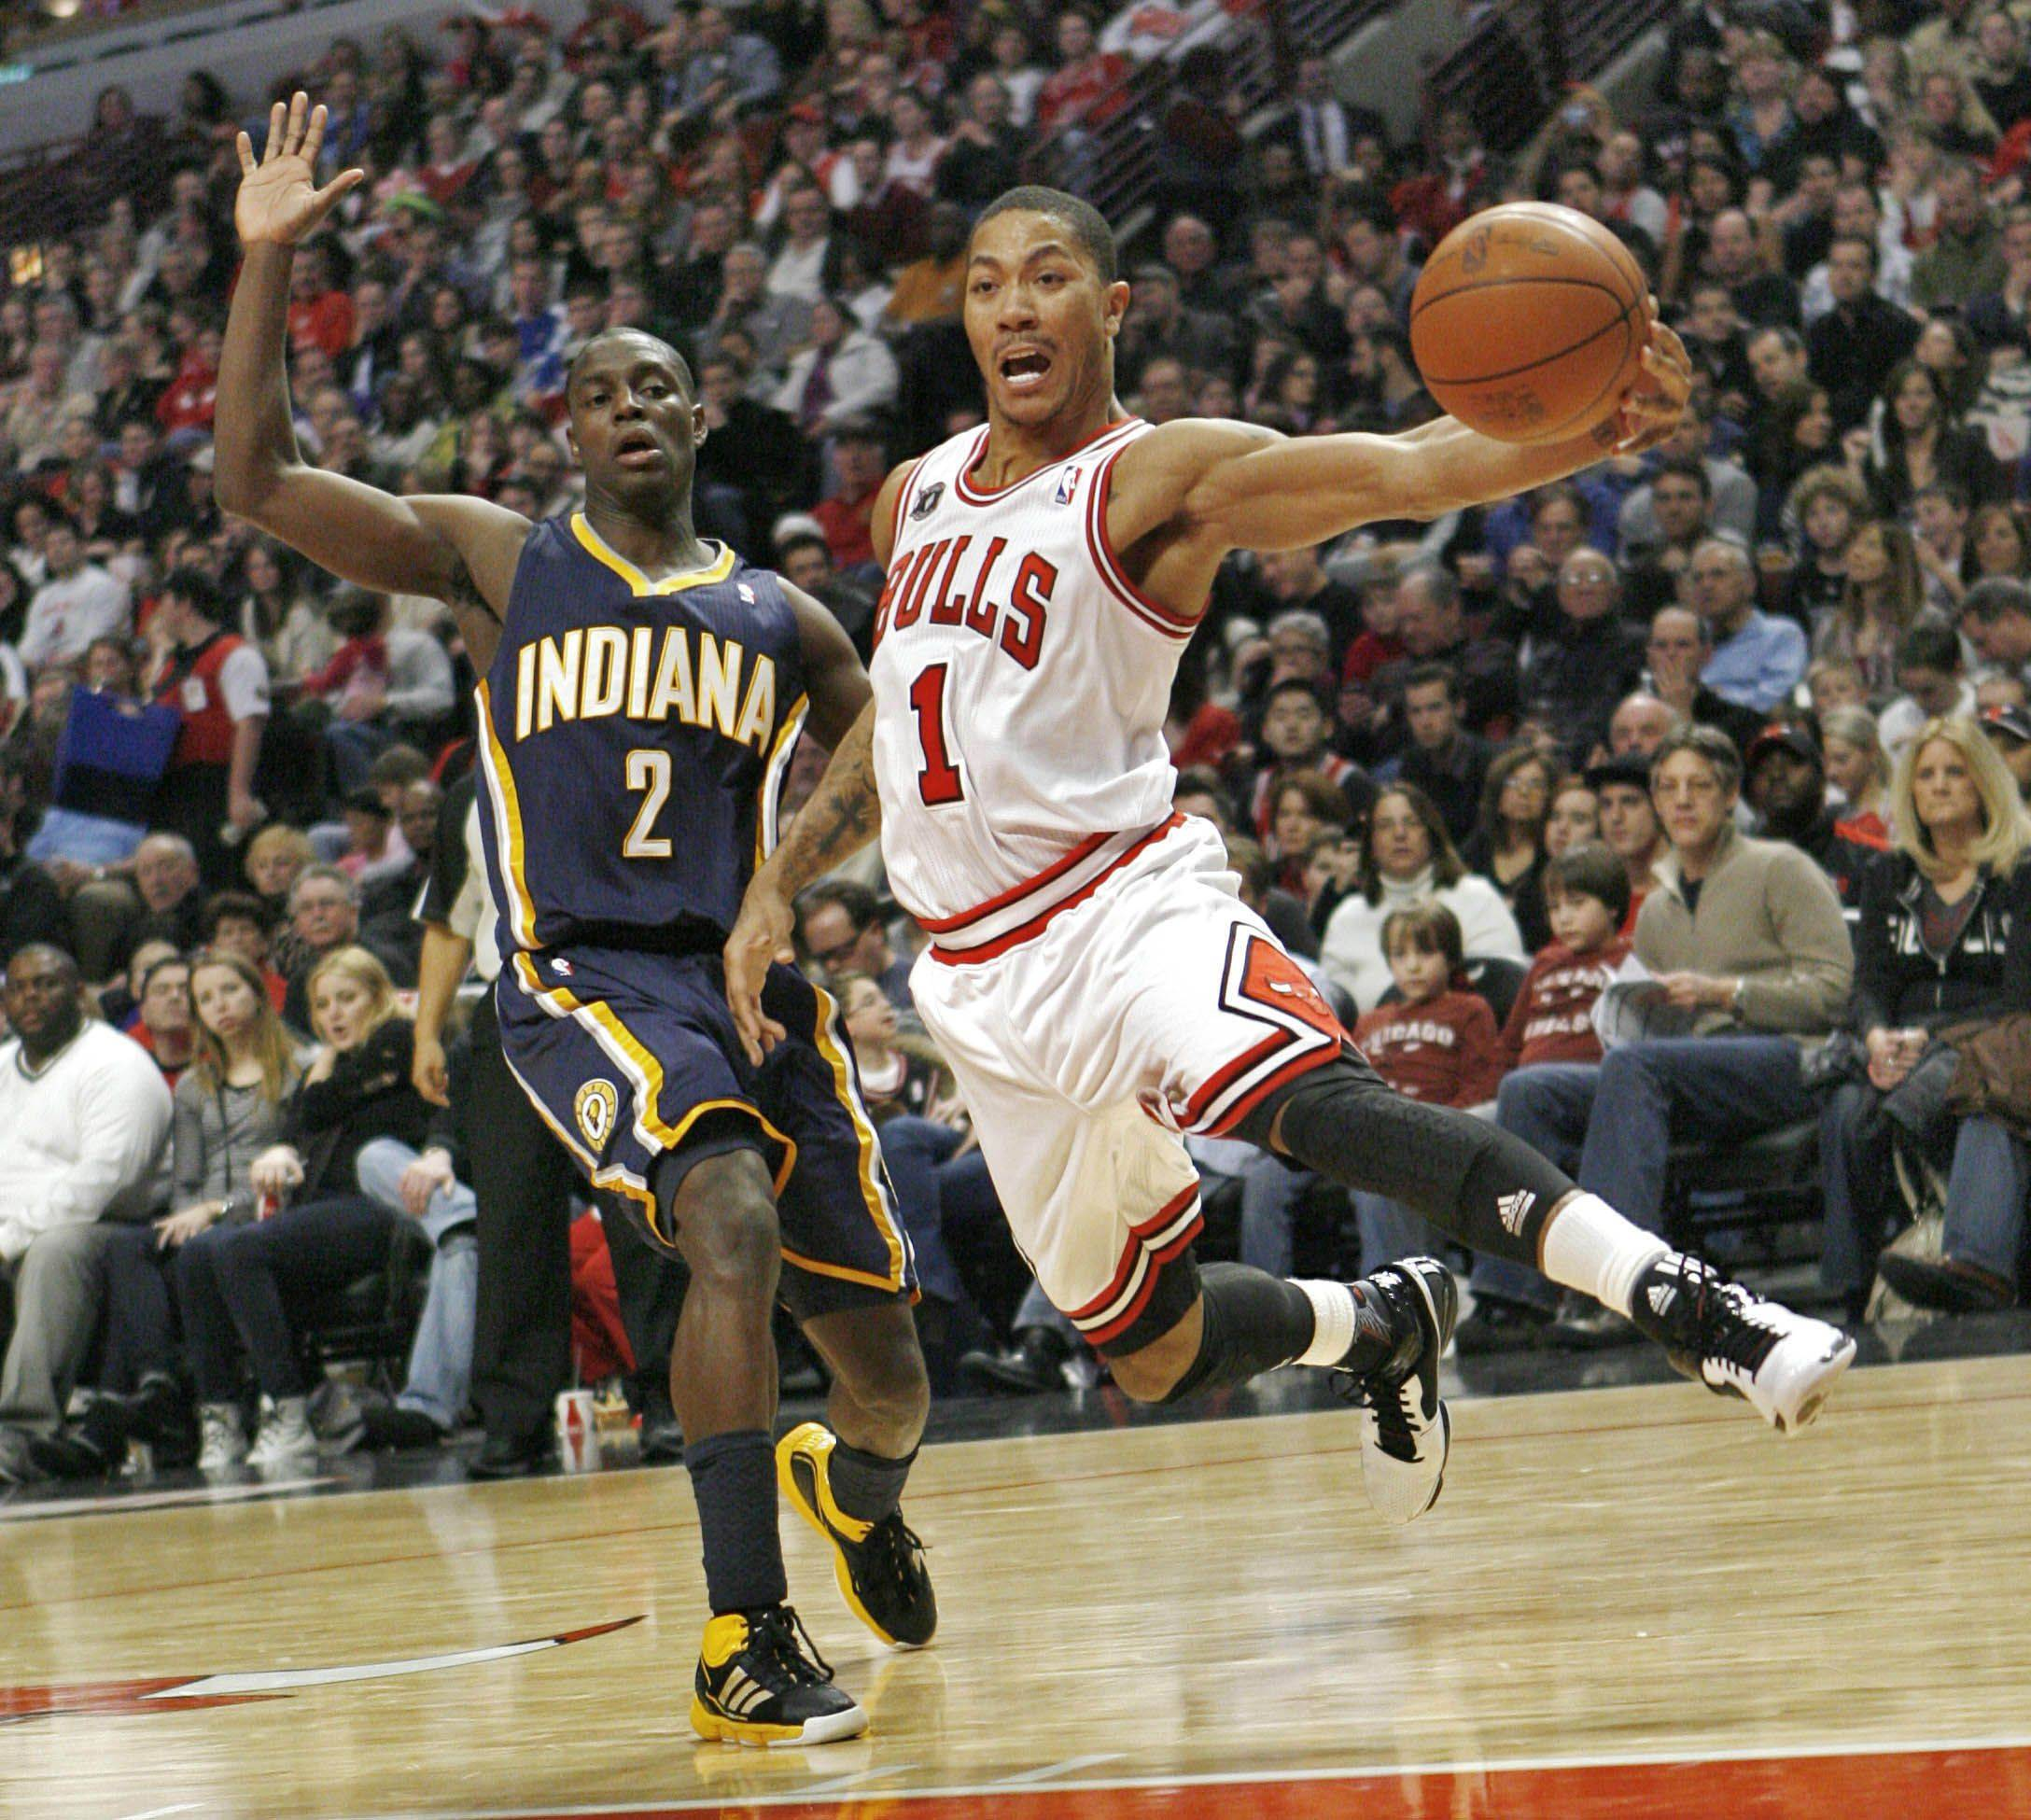 The Chicago Bulls' Derrick Rose (1) loses control of ball as he drives around Indiana Pacers' Darren Collison in the fourth quarter as the Bulls defeated the Pacers 110-89 in an NBA basketball game in Chicago on Saturday, Jan. 29, 2011.